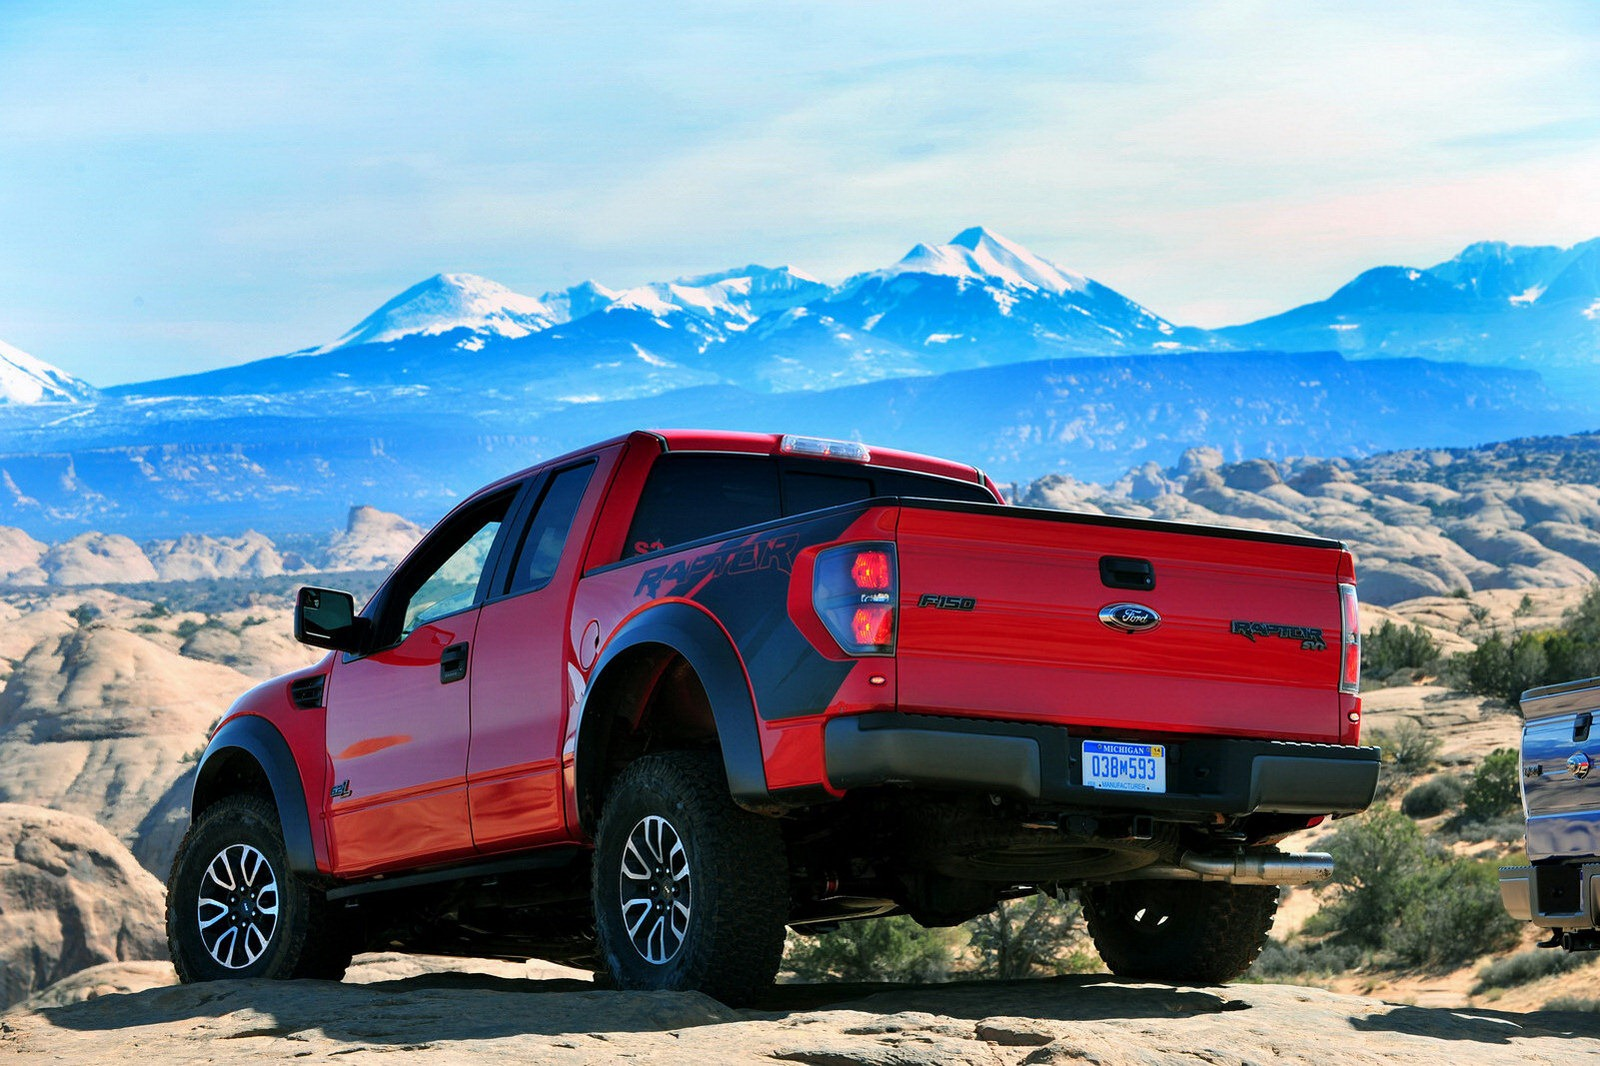 2014 Ford F-150 Rumored to Make Extensive Use of Aluminum Body Panels